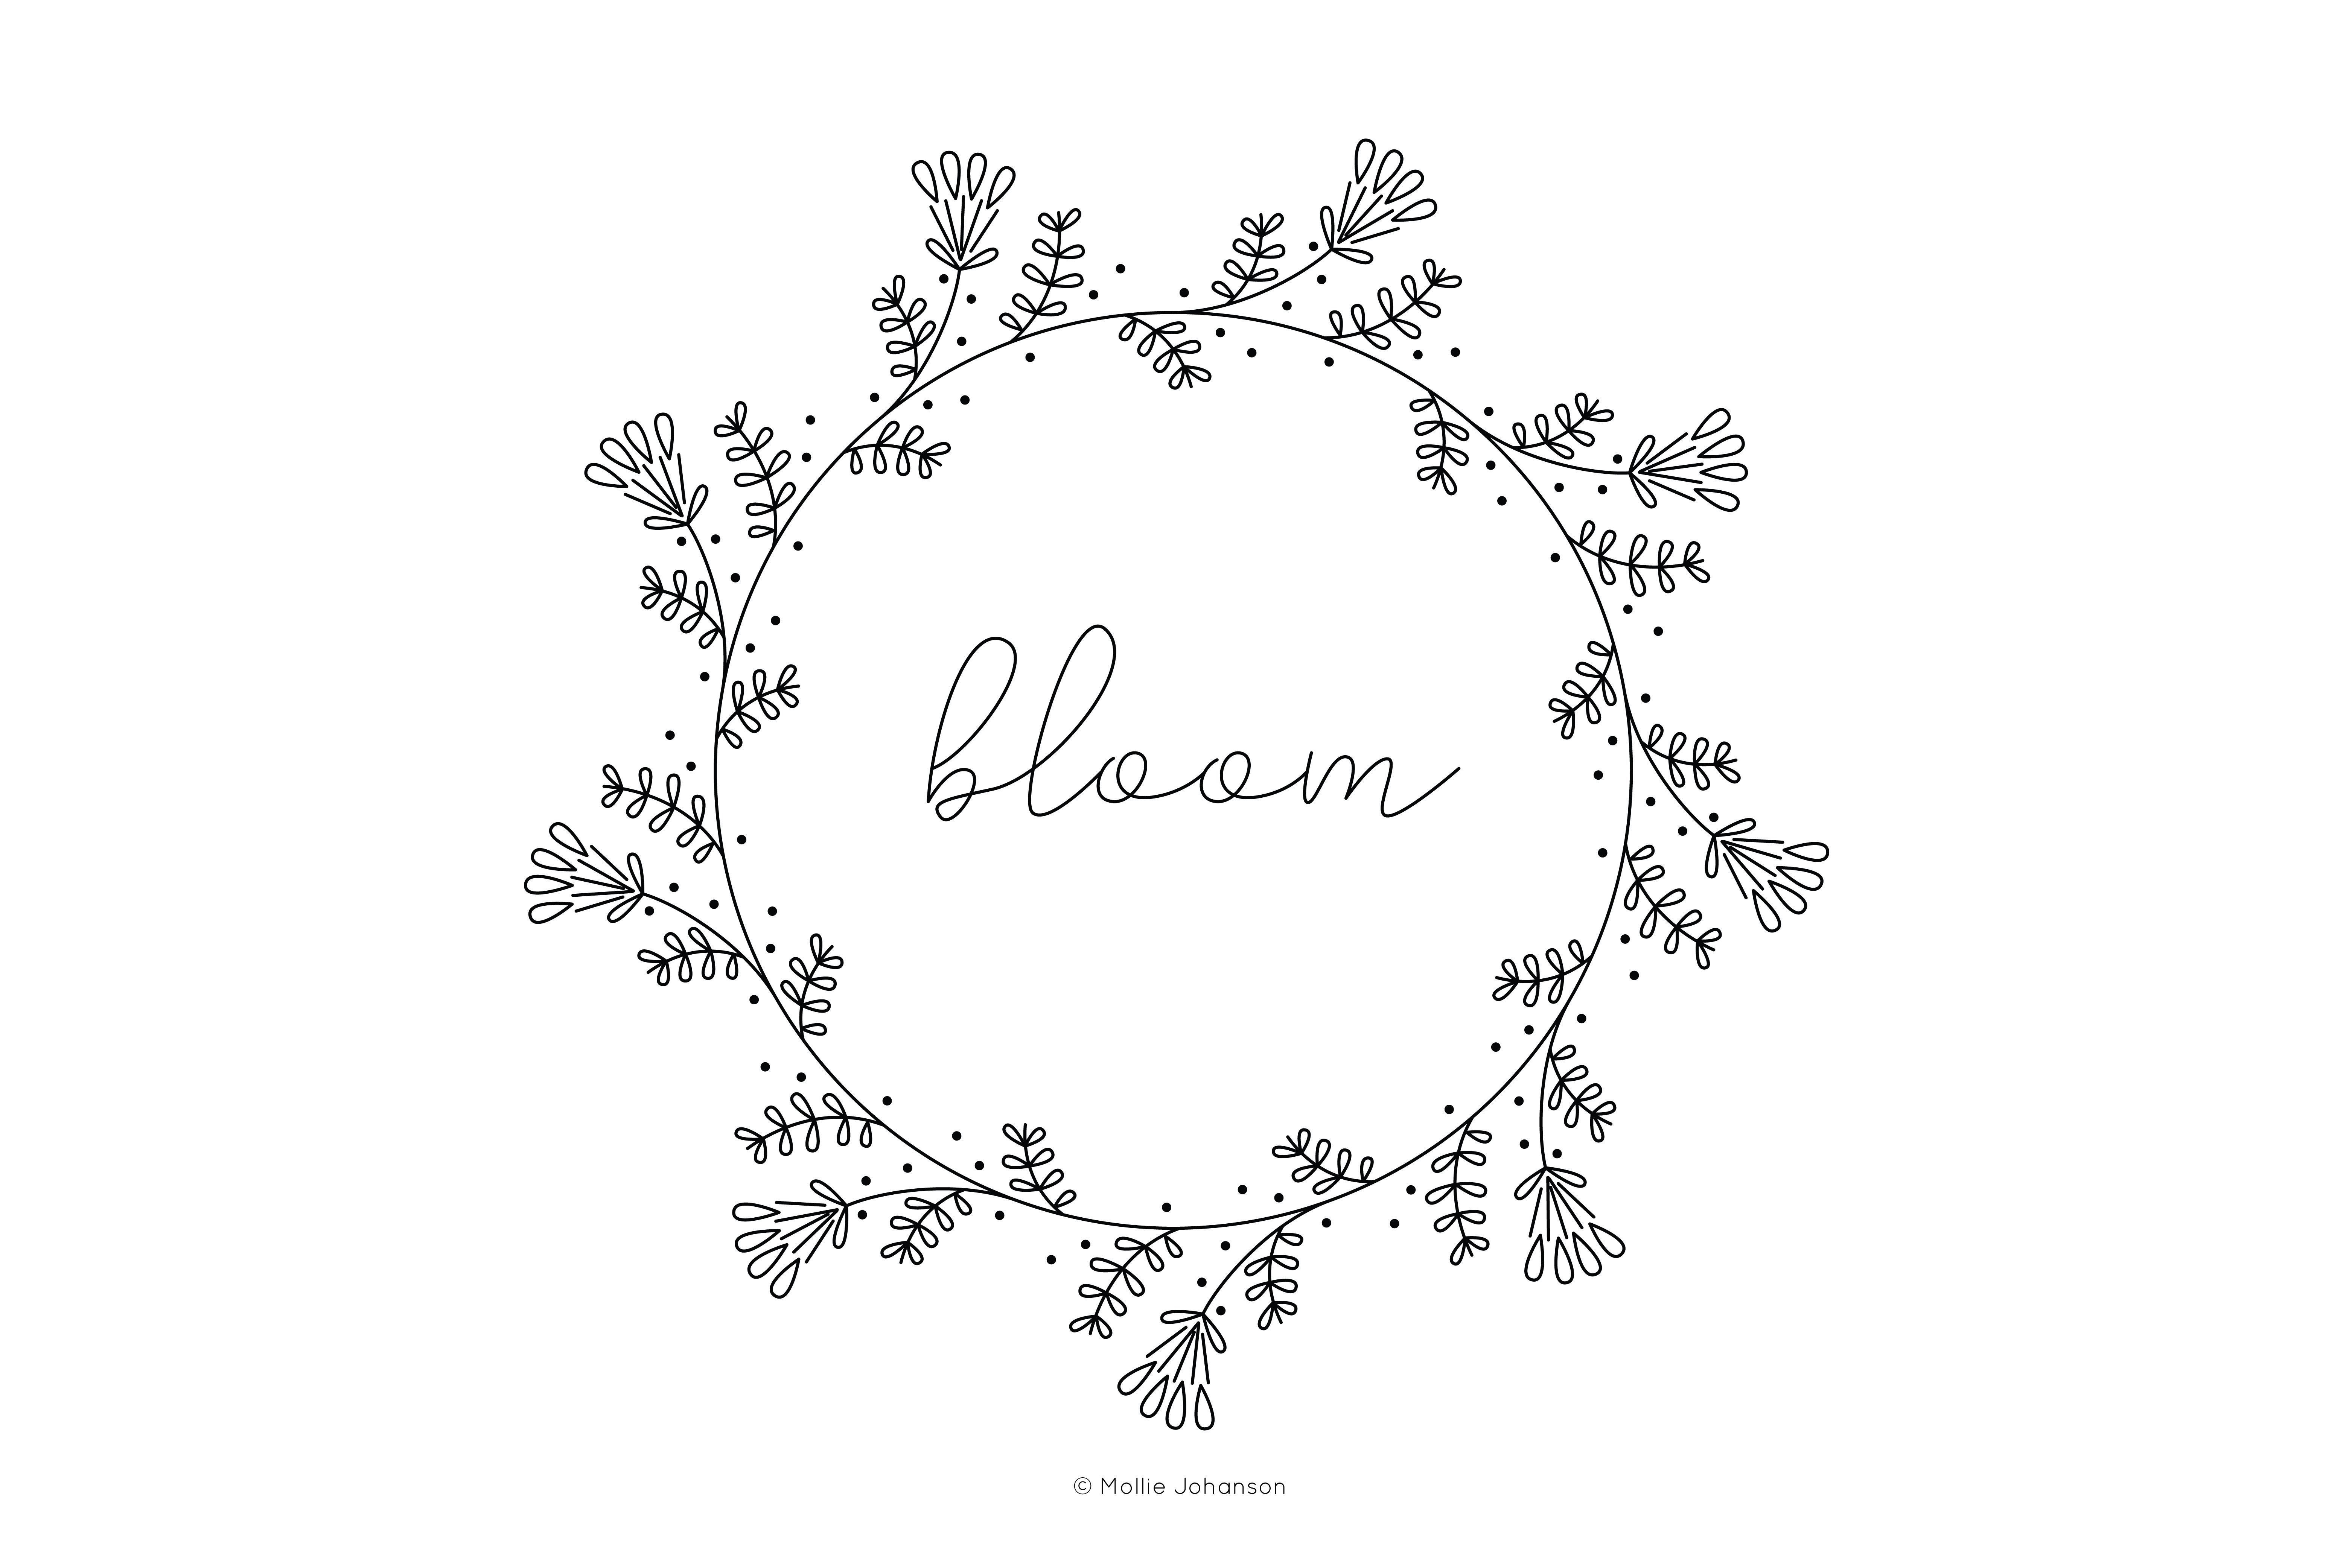 Free Vintage-Inspired Bloom Embroidery Pattern - Free Printable Embroidery Patterns